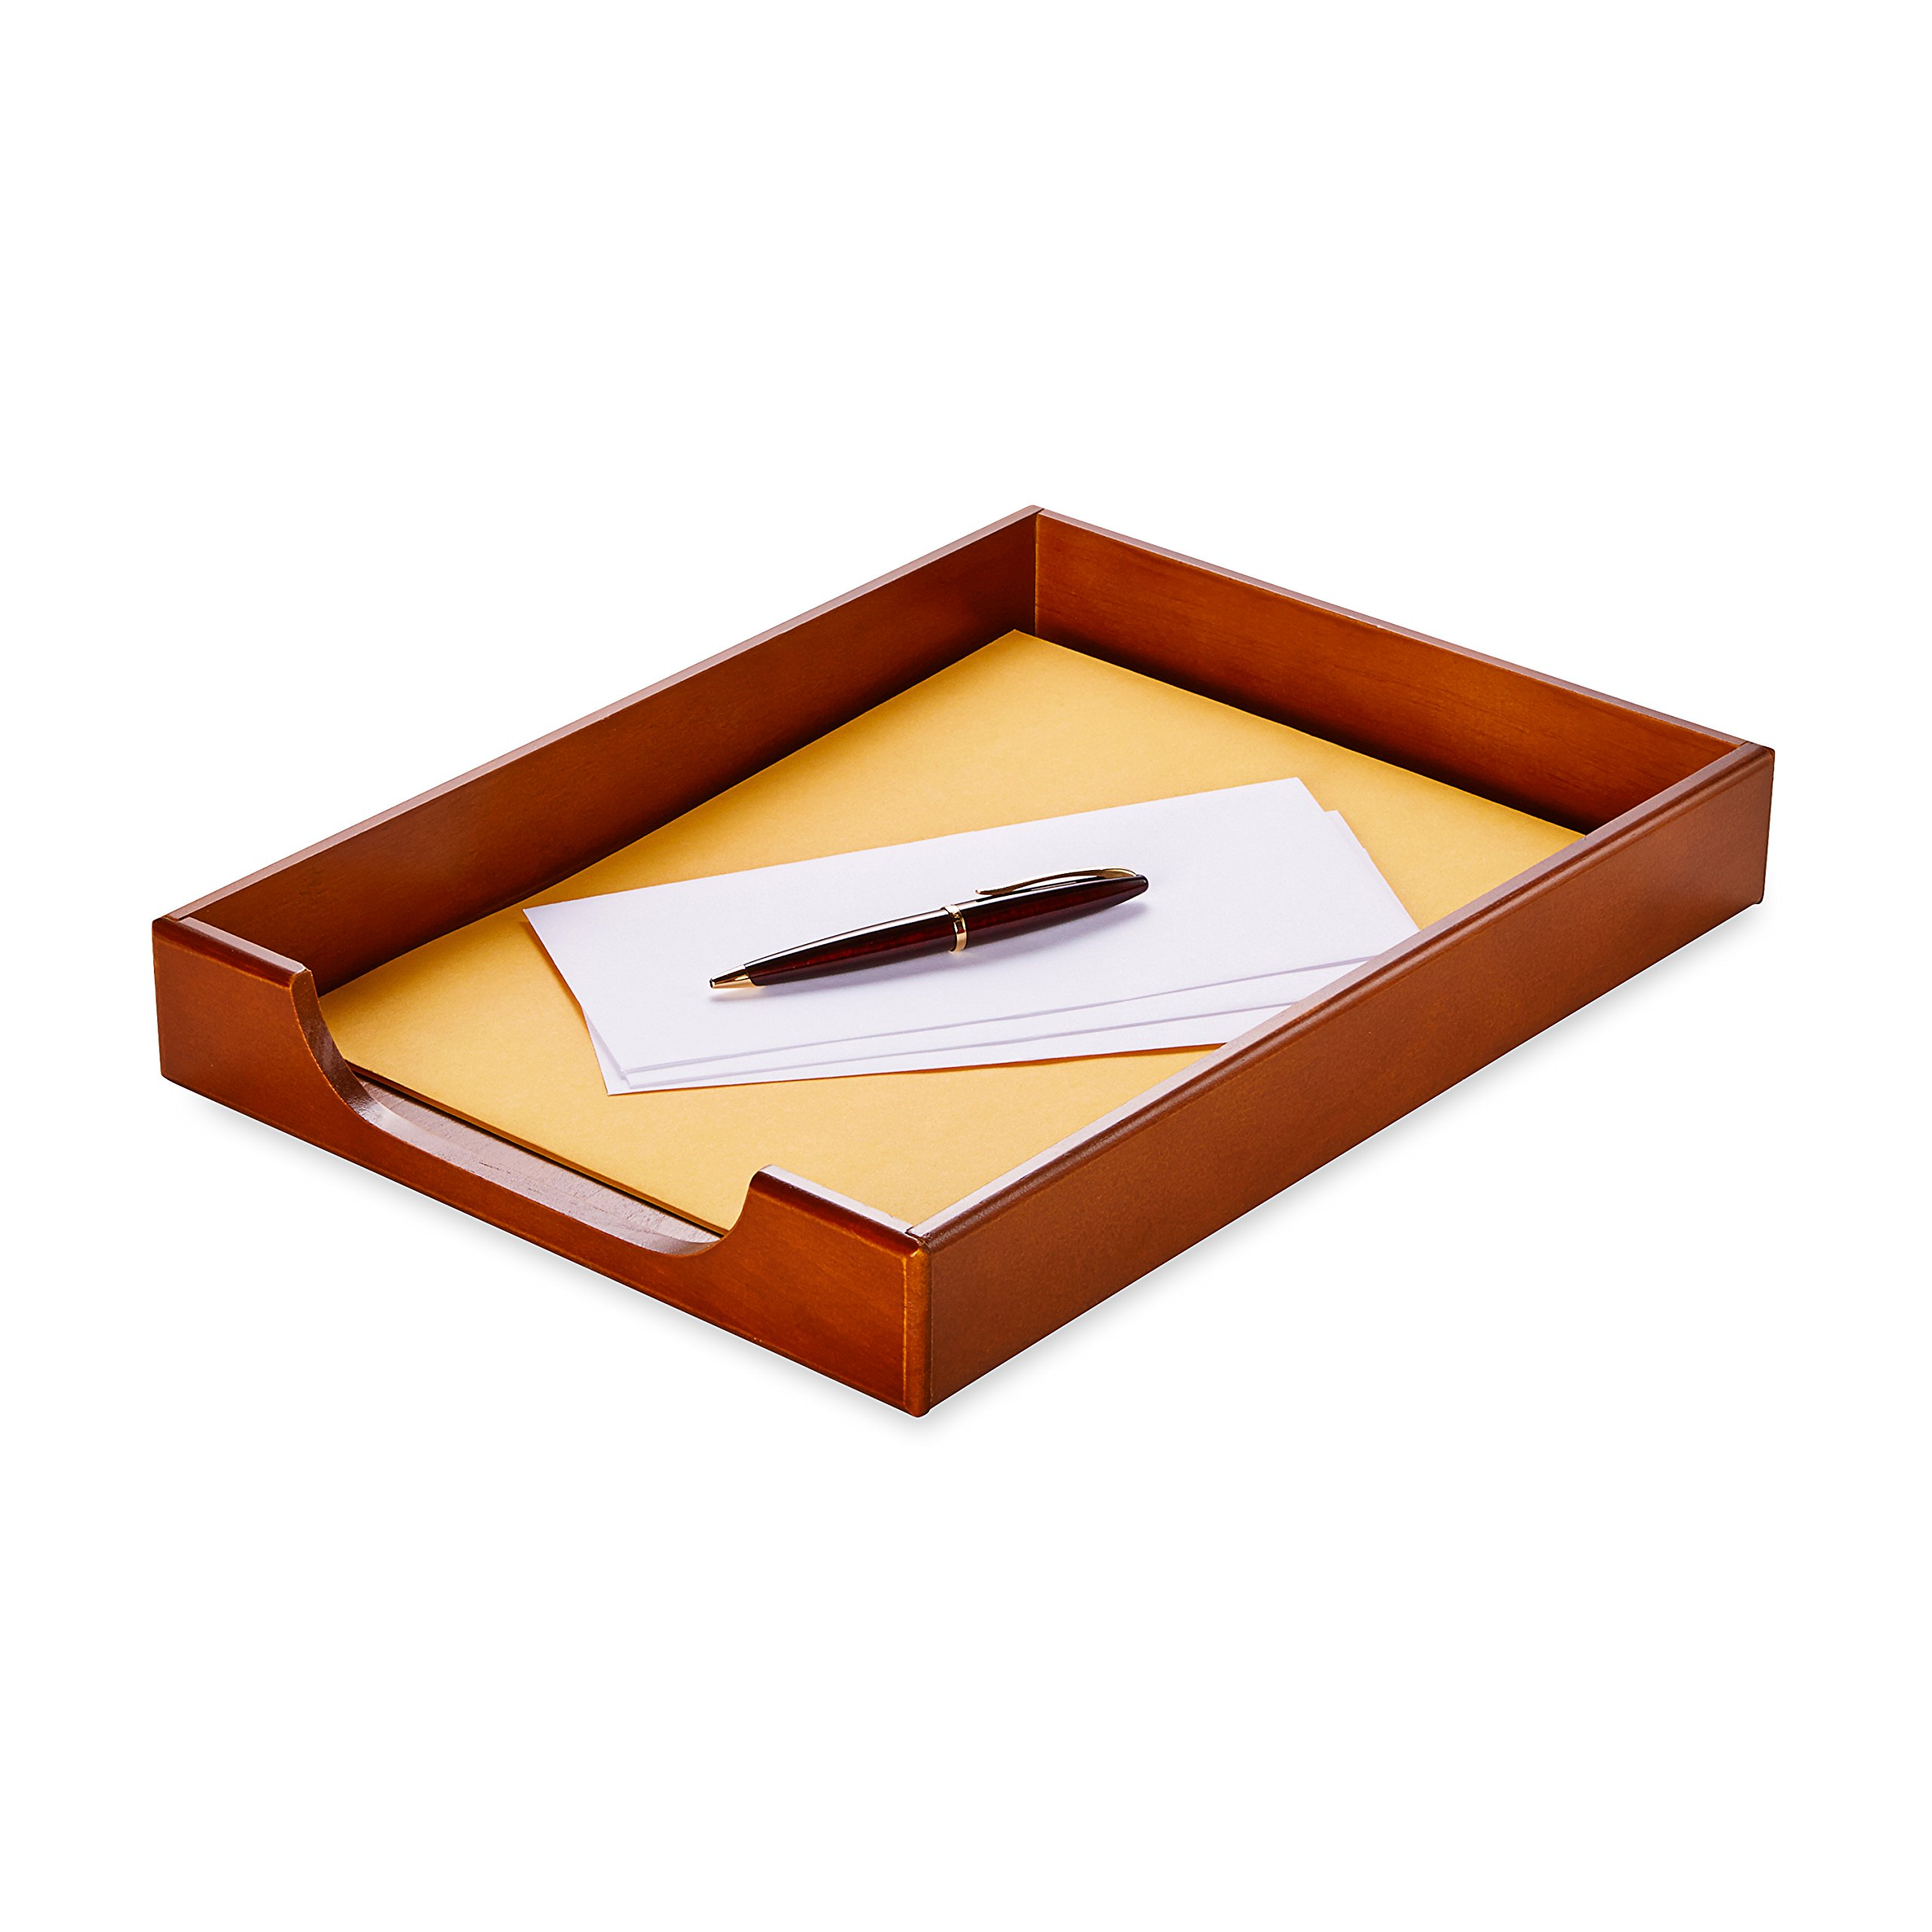 Rolodex Wood Tones Collection Desk Tray, Legal-Size, Mahogany (23360) by Rolodex (Image #2)